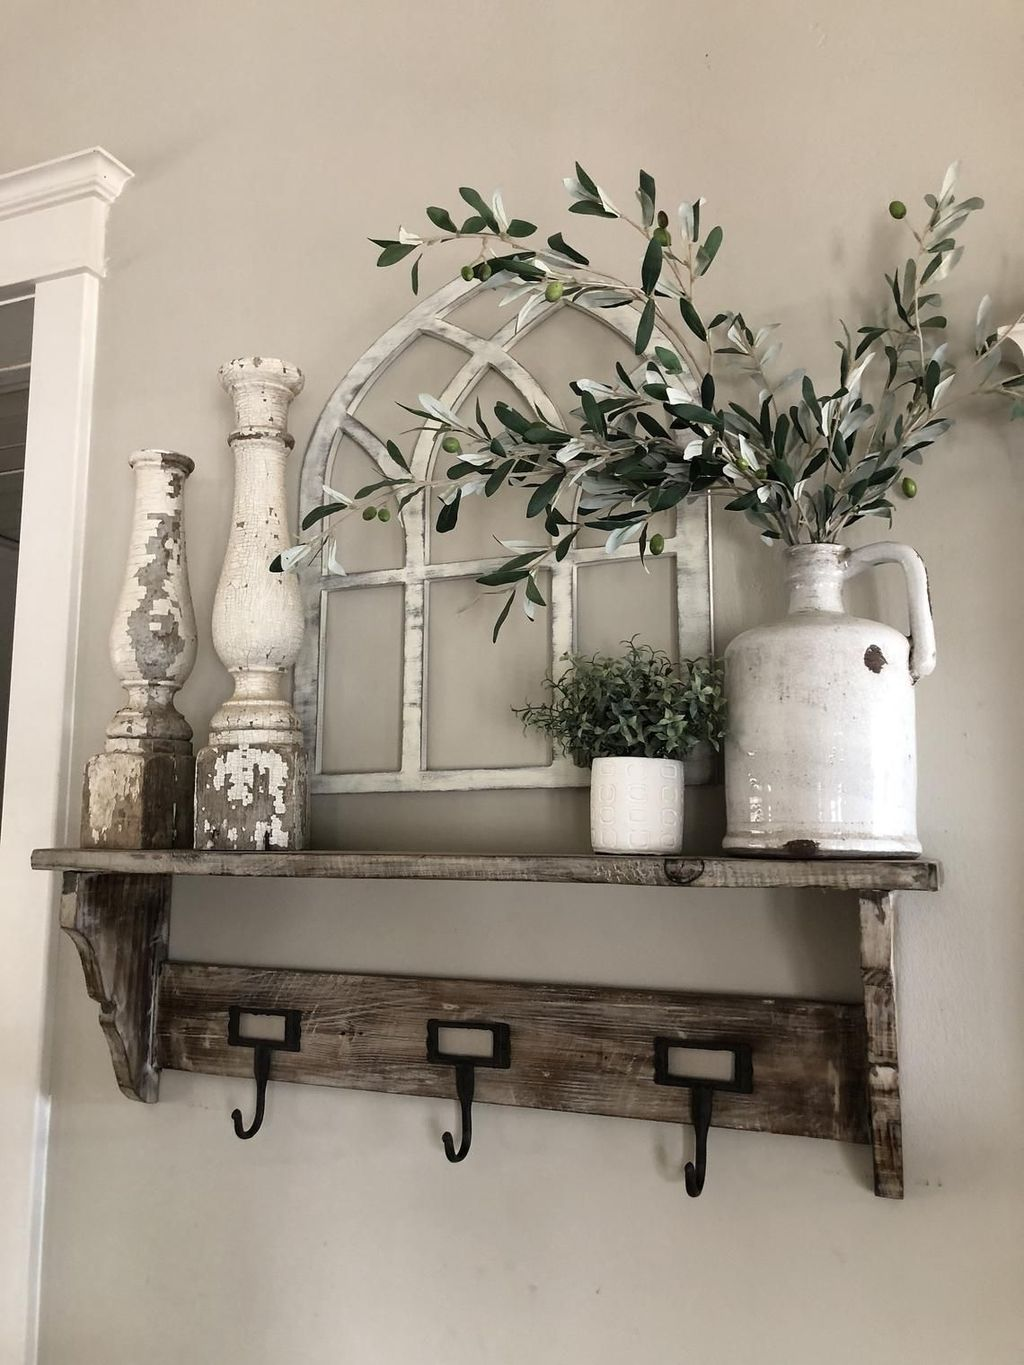 Inspiring DIY Farmhouse Home Decor Ideas 05